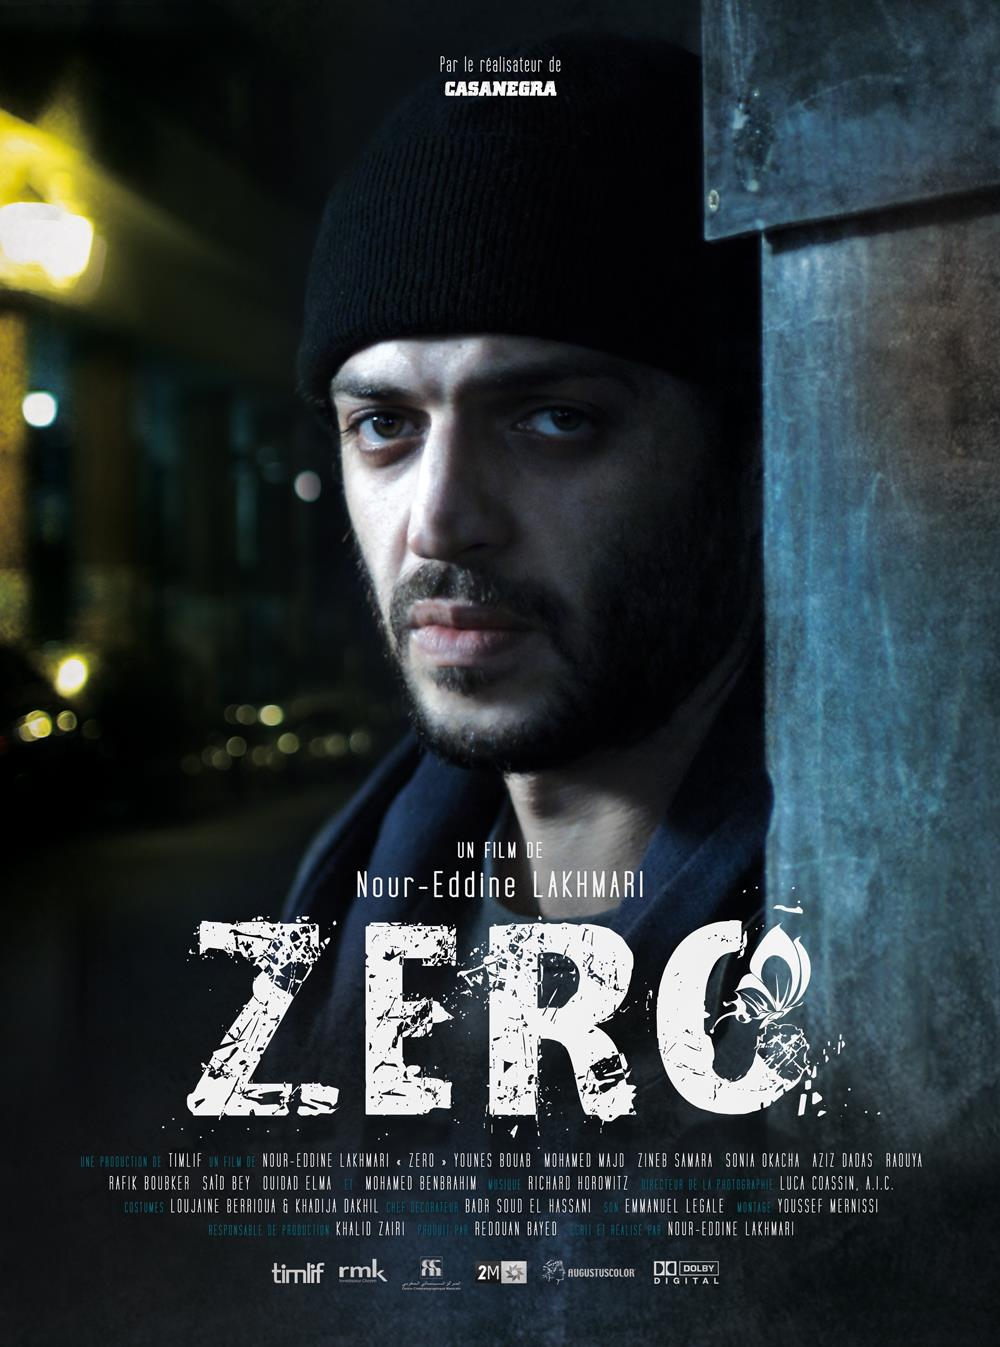 Film marocain zero complet qualite hd streaming for Film marocain chambra 13 complet